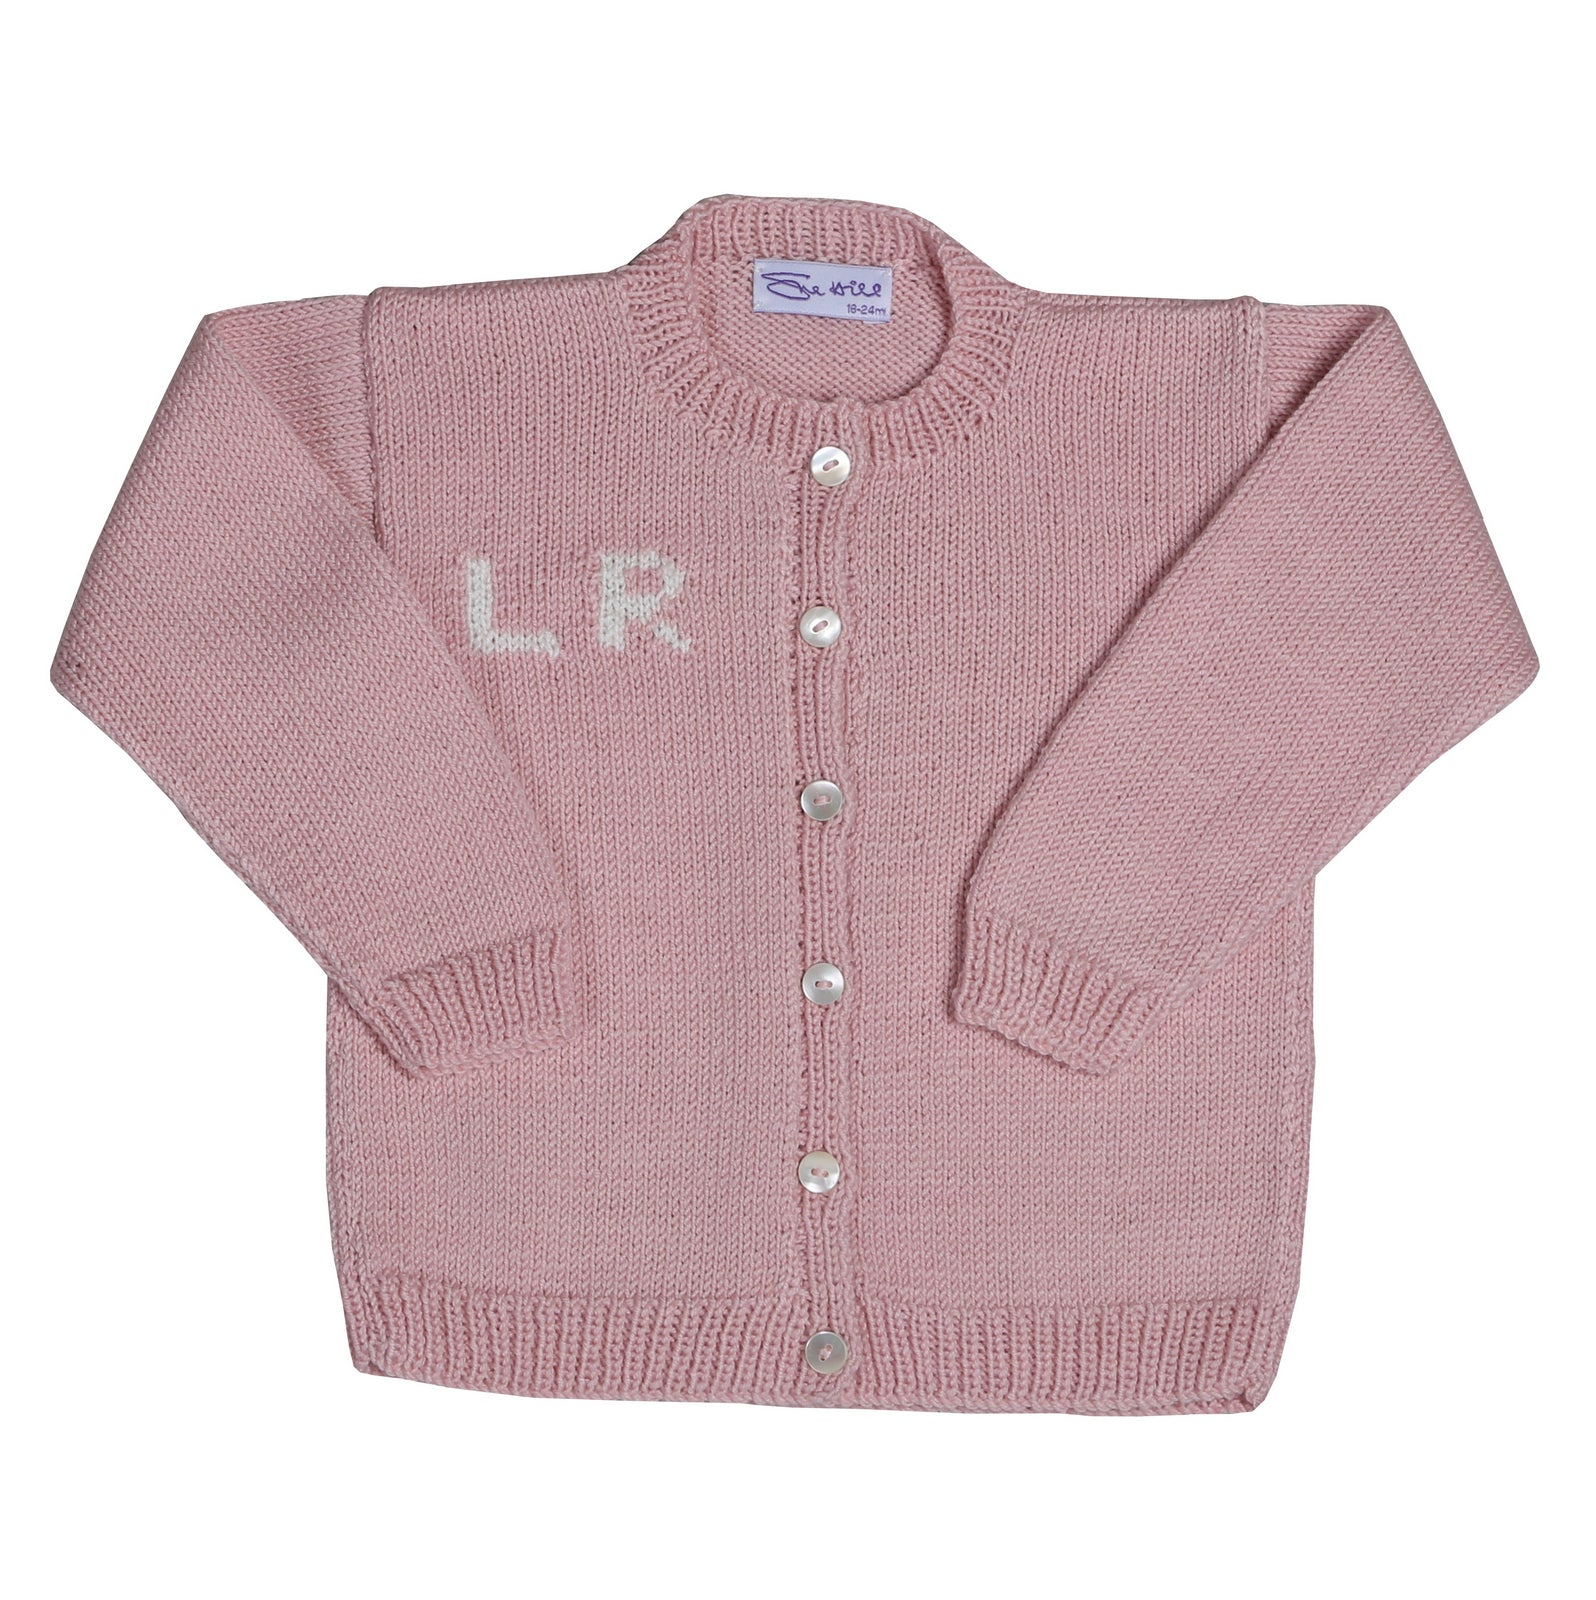 Sue Hill girls personalised cardigan